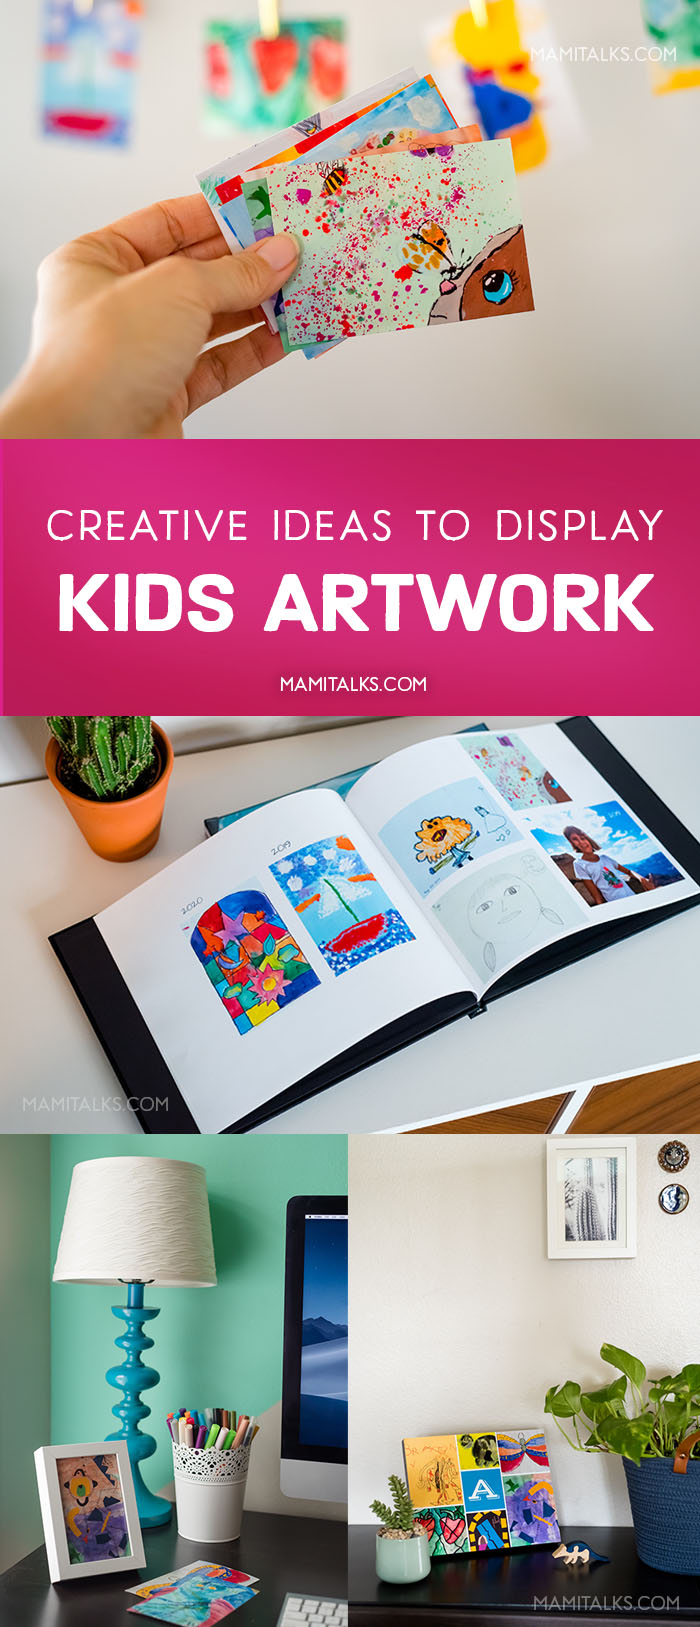 Creative Ideas to display kids' art, make photo books, print them little and hang them with pins, print them and frame them. -MamiTalks.com